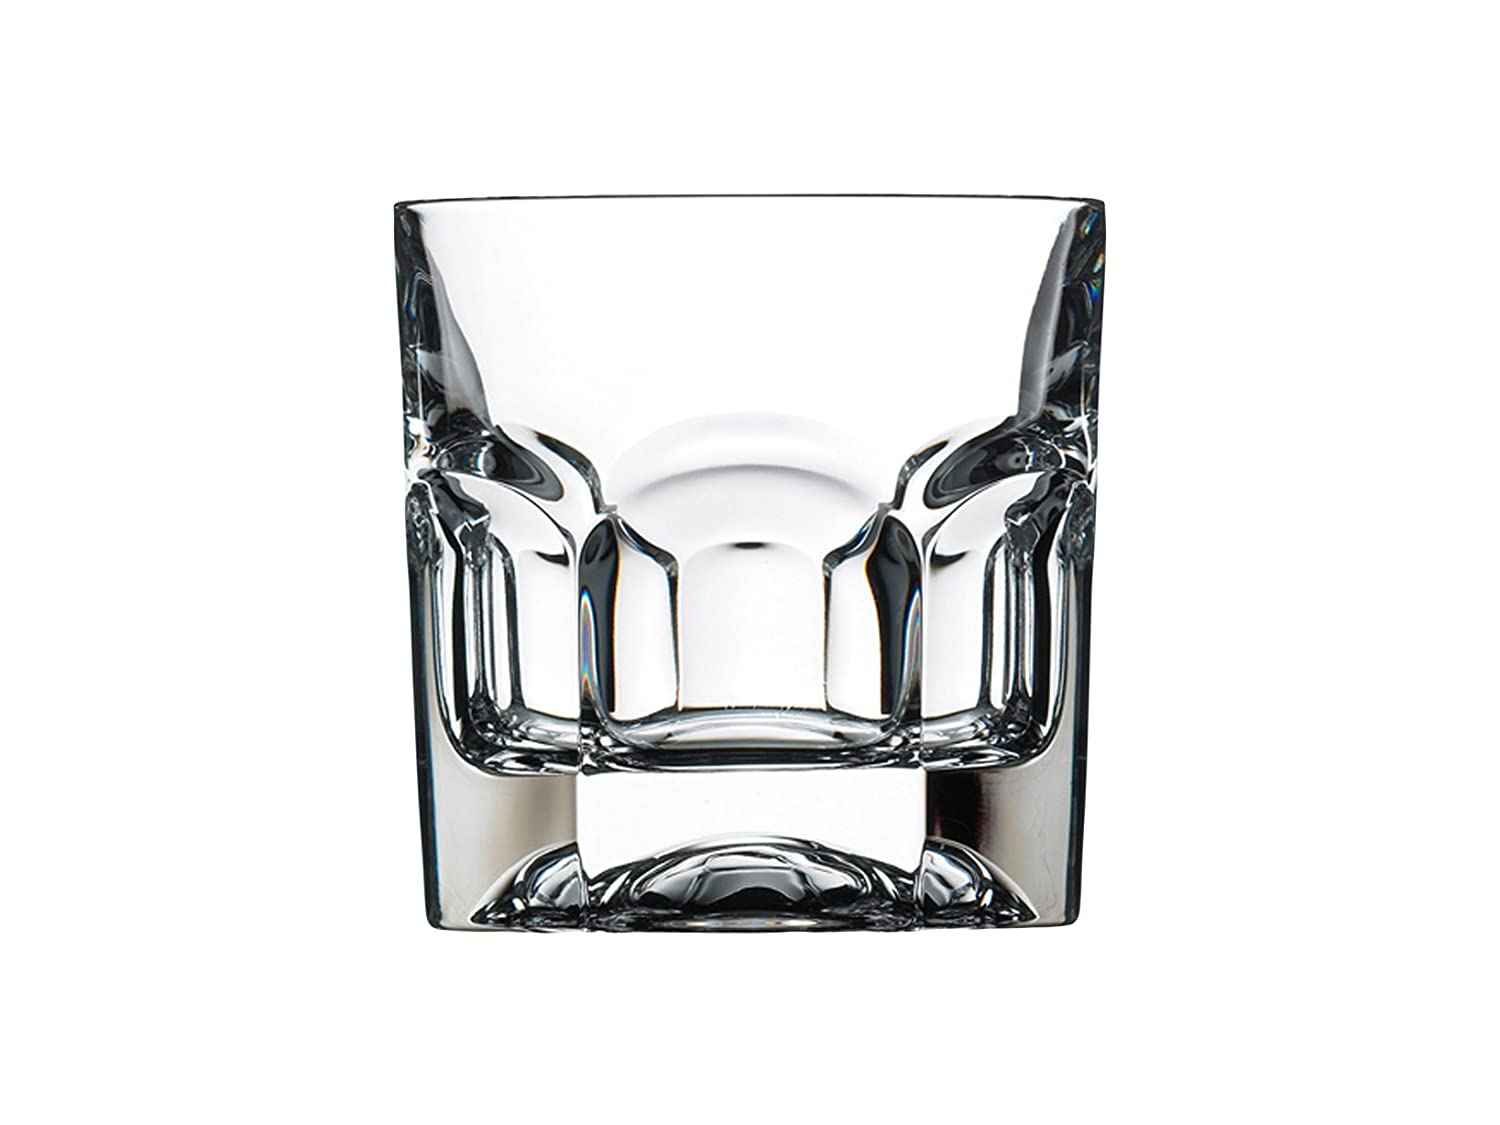 6d20bd93483 Buy RCR Provenza Doubled Old Fashioned Tumbler